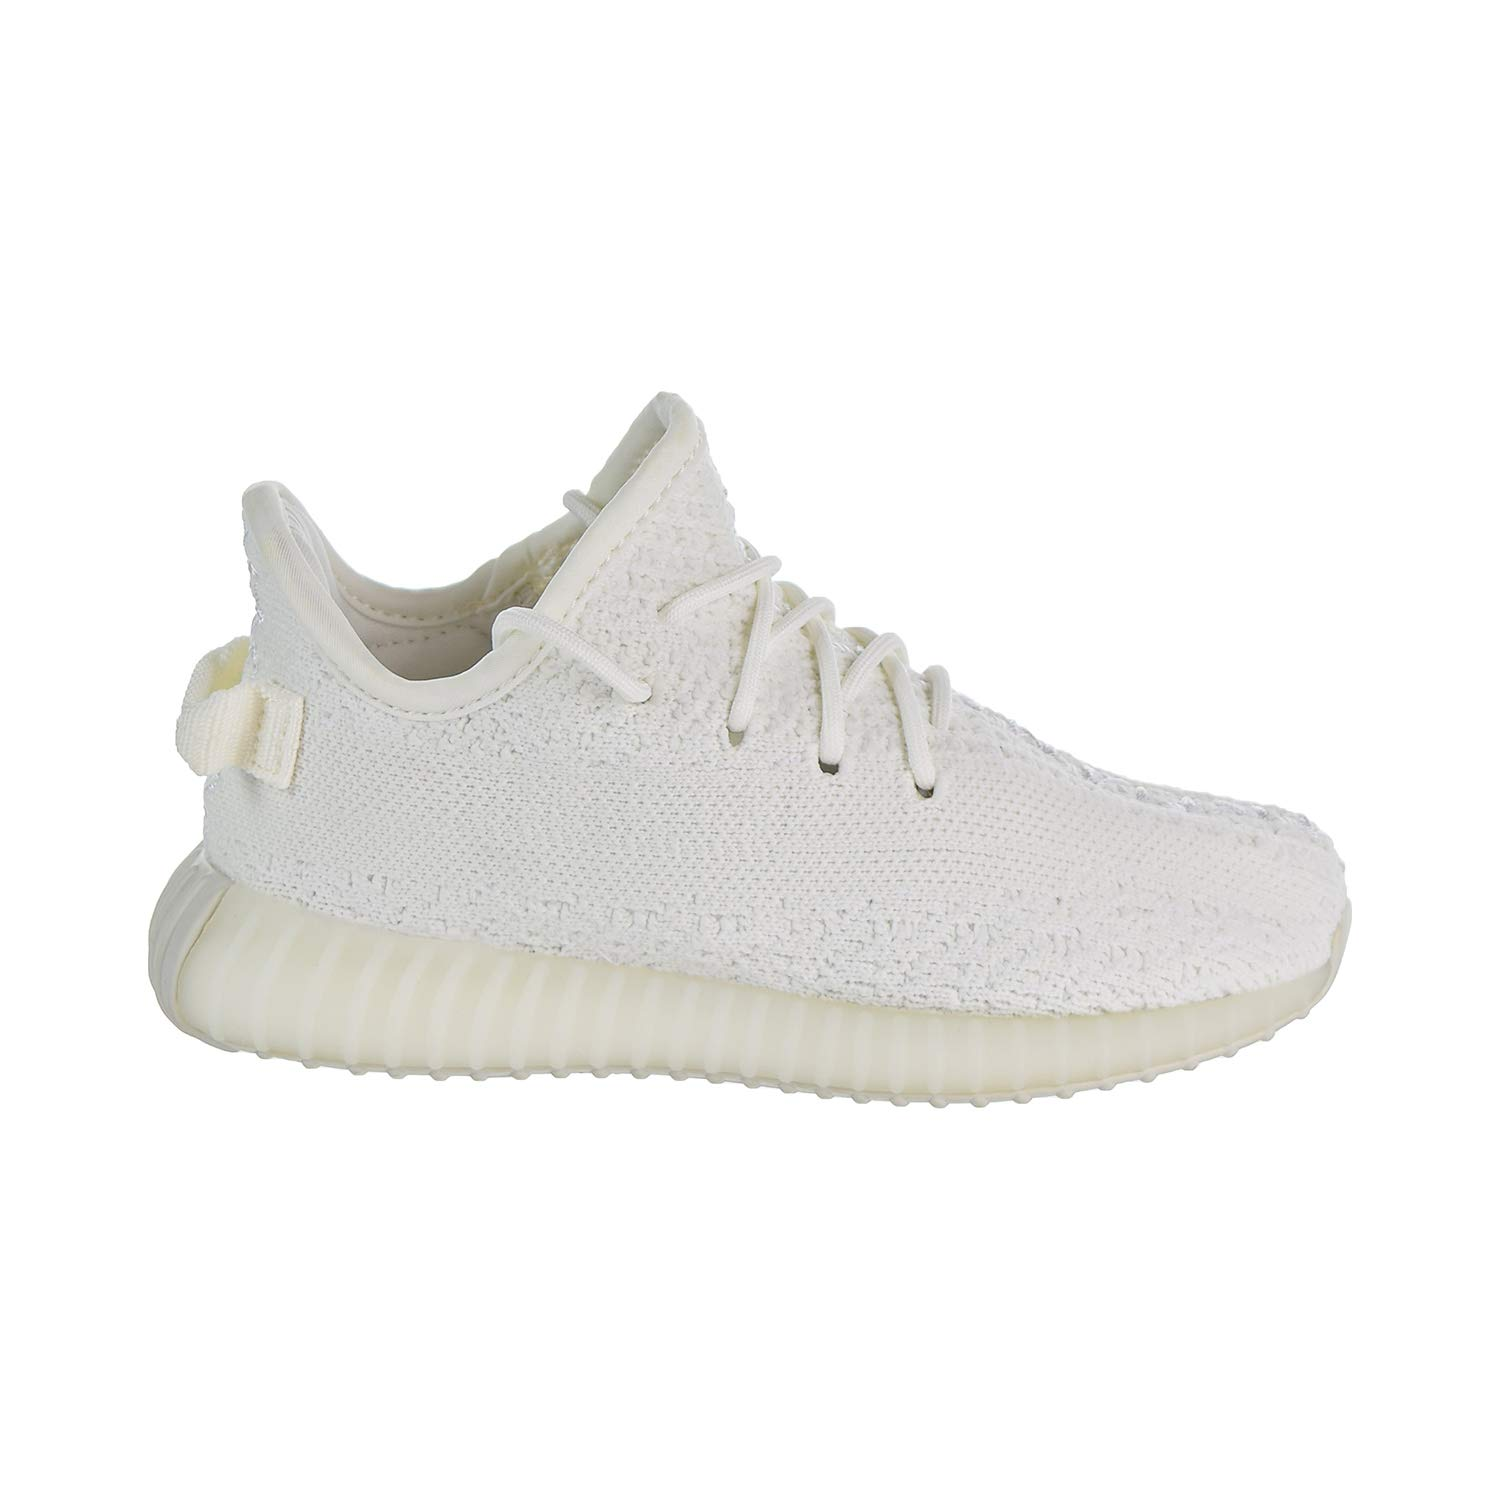 timeless design a1a9e f4a42 Adidas Yeezy Boost 350 V2 Infant